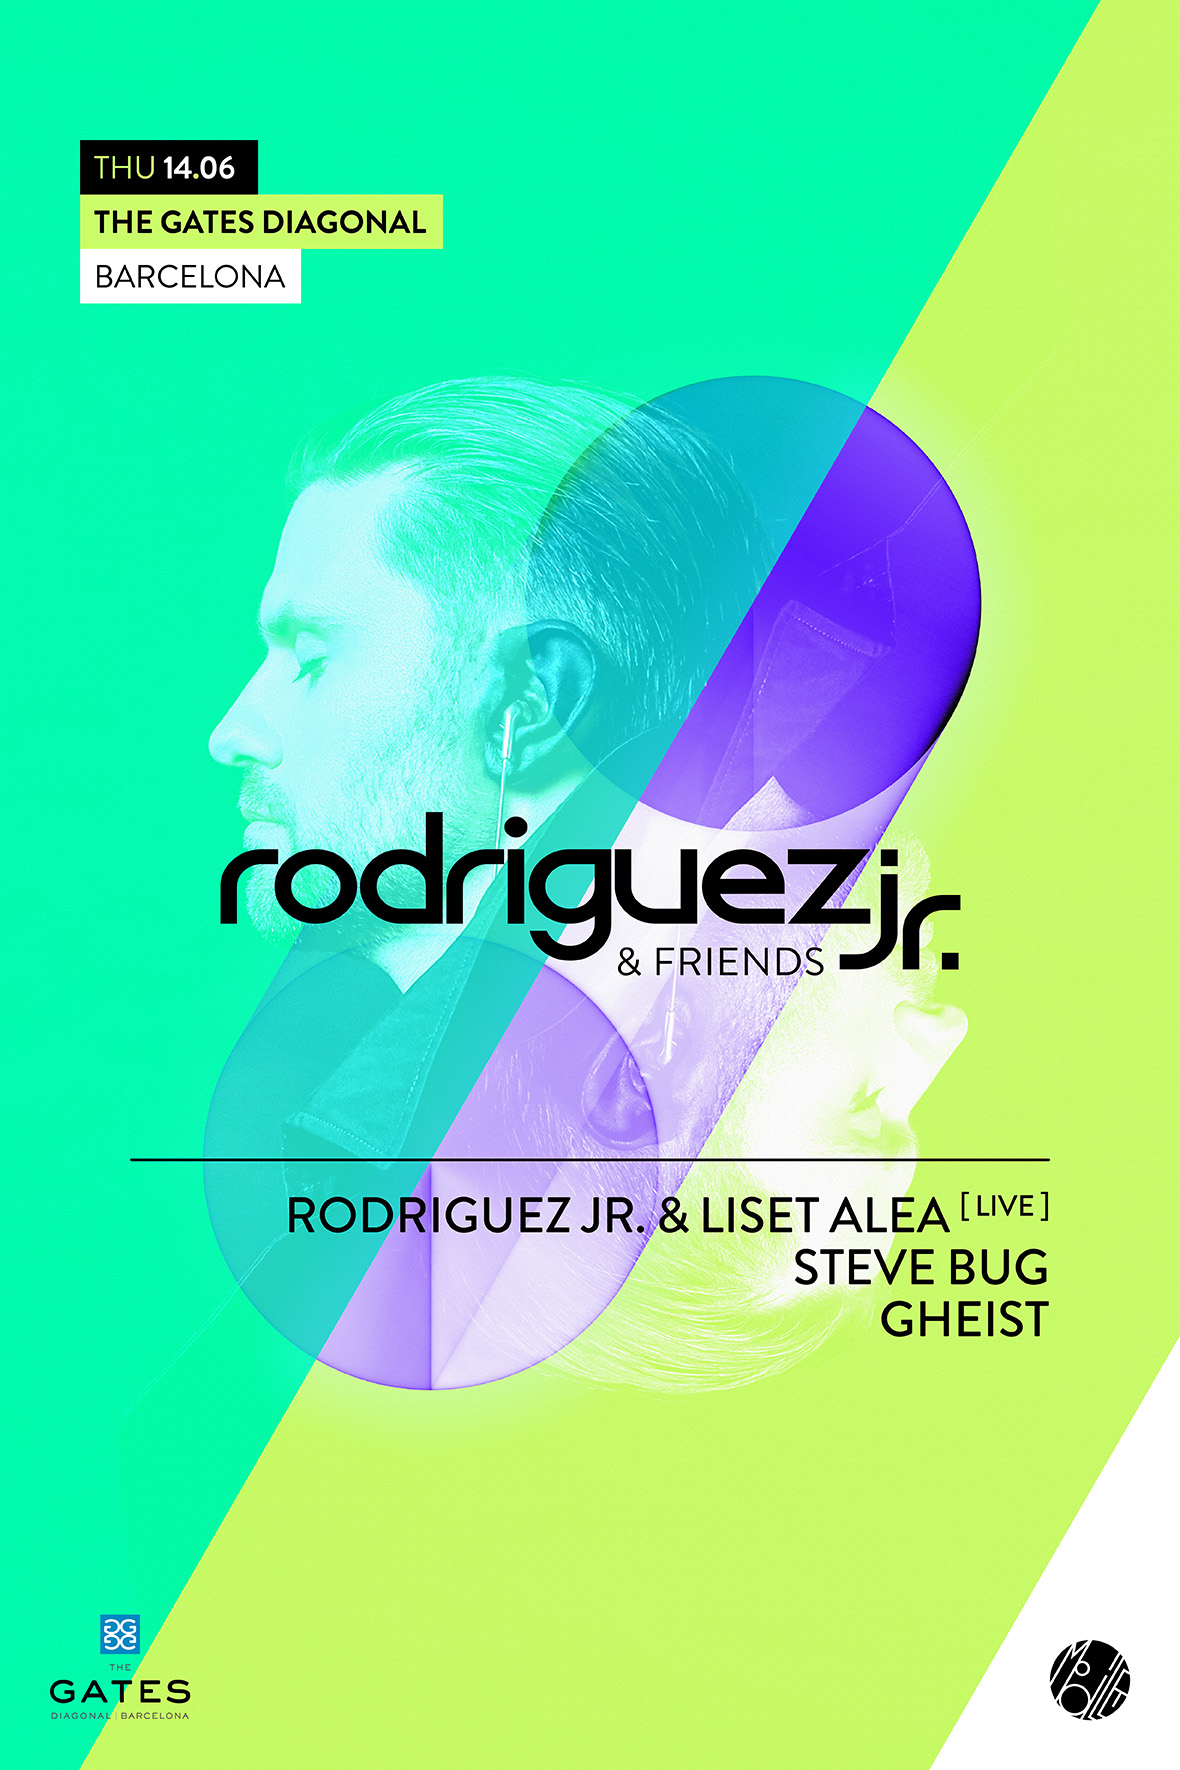 download → Rodriguez Jr. & Liset Alea, GHEIST, Steve Bug - live at Rodriguez Jr. & Friends Rooftop 2018, Barcelona, Off Week 2018 - 14-Jun-2018